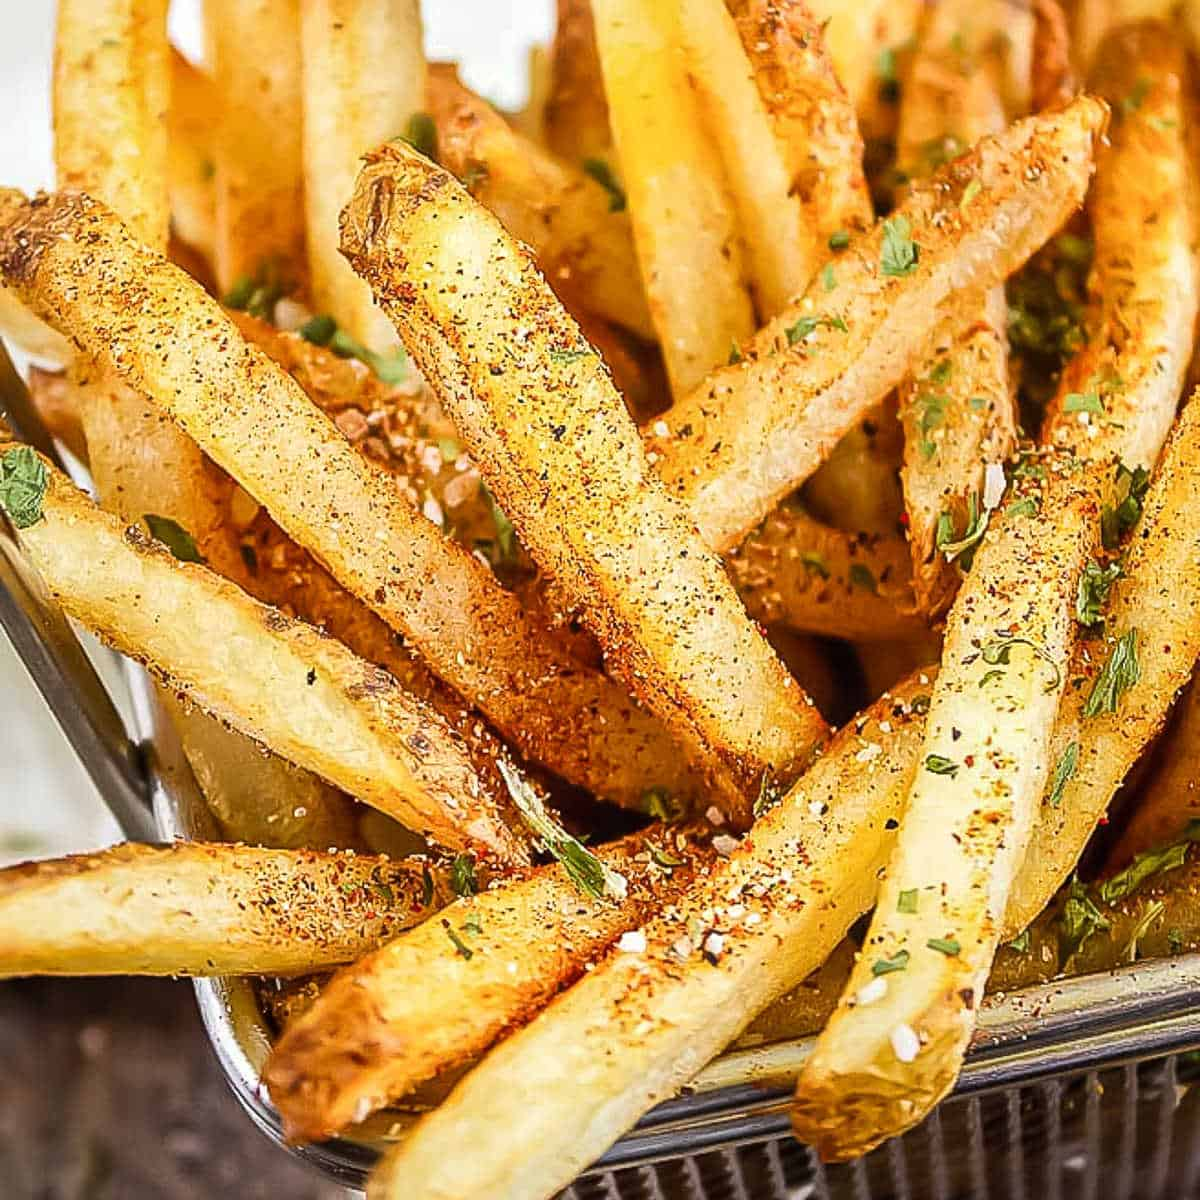 wire basket of french fries with seasoning with a napkin in the back